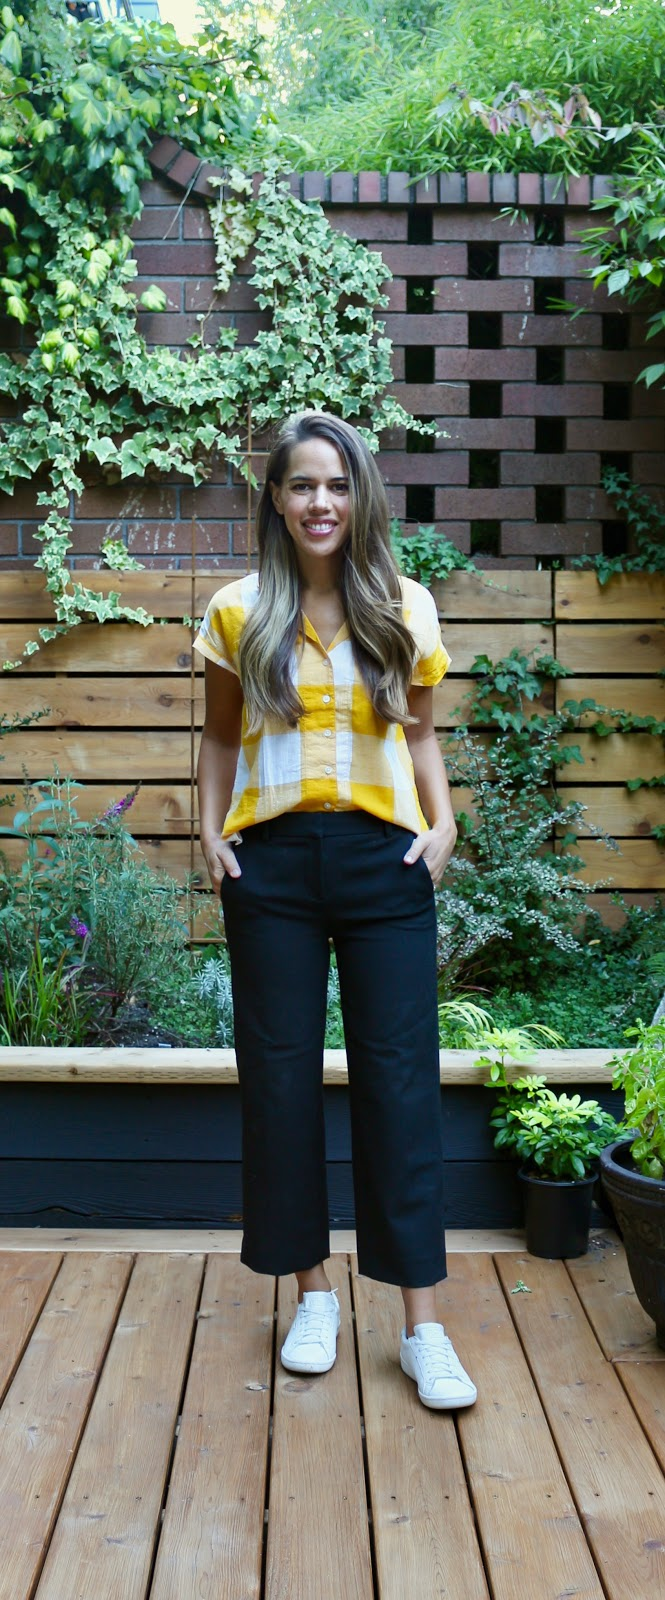 Jules in Flats - Oversized Gingham Button Front Top with Wide Leg Crop Pants (Business Casual Workwear on a Budget)